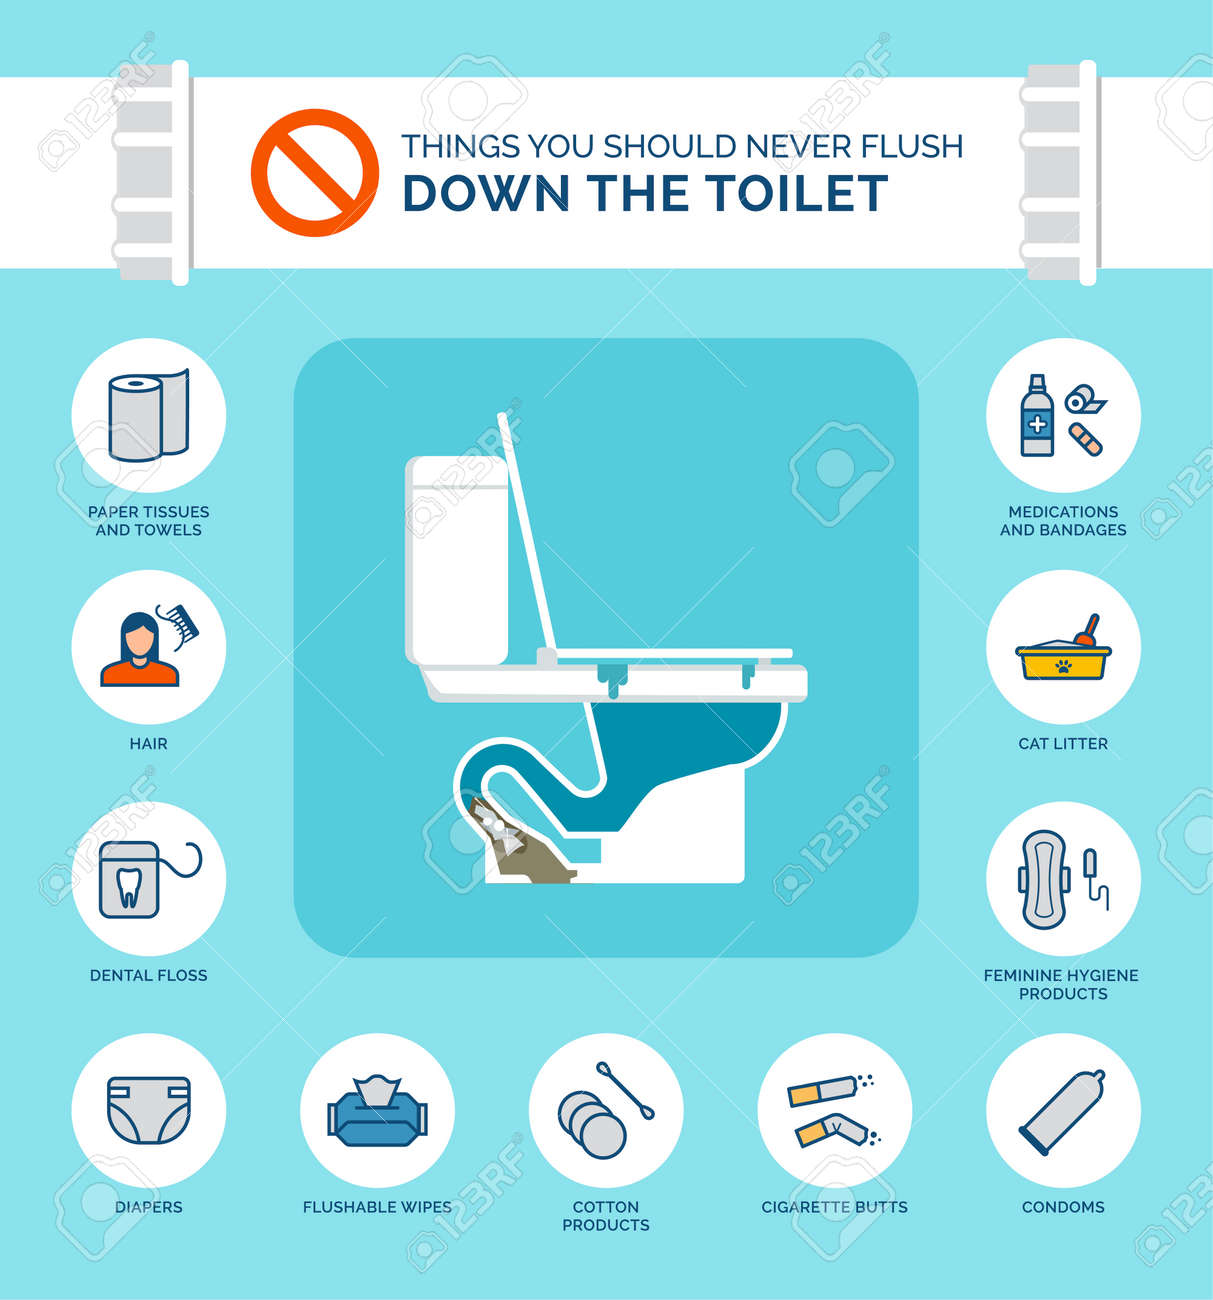 Things you should never flush down the toilet infographic, how to prevent clogs in your drain - 169454616